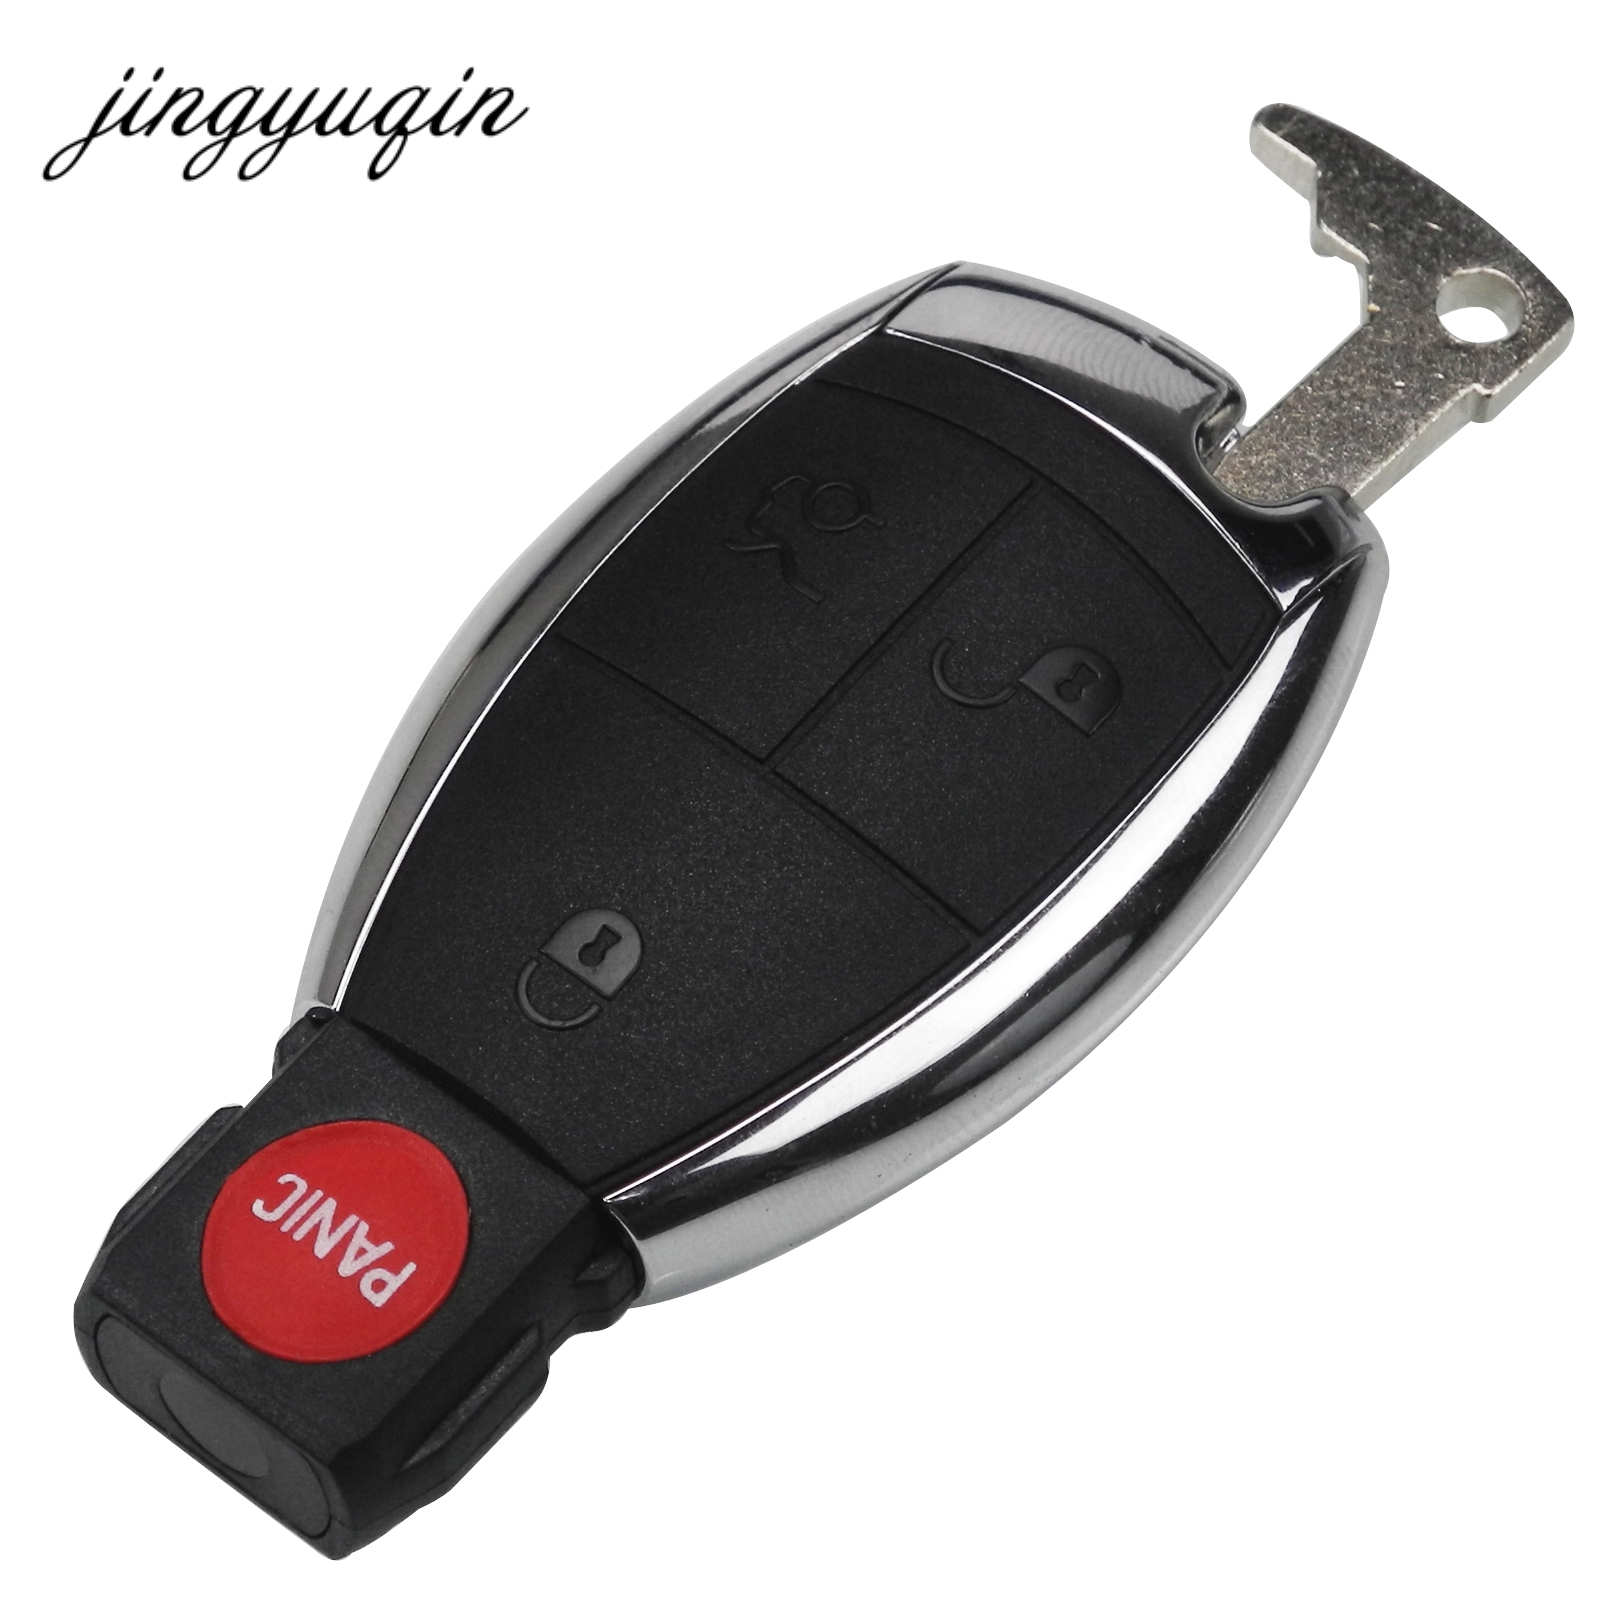 jingyuqin 10pcs Key Case Shell Keyless Remote Fob Case fit Mercedes for Benz E C R CL GL SLK with Battery Clamp Holder 4BTN